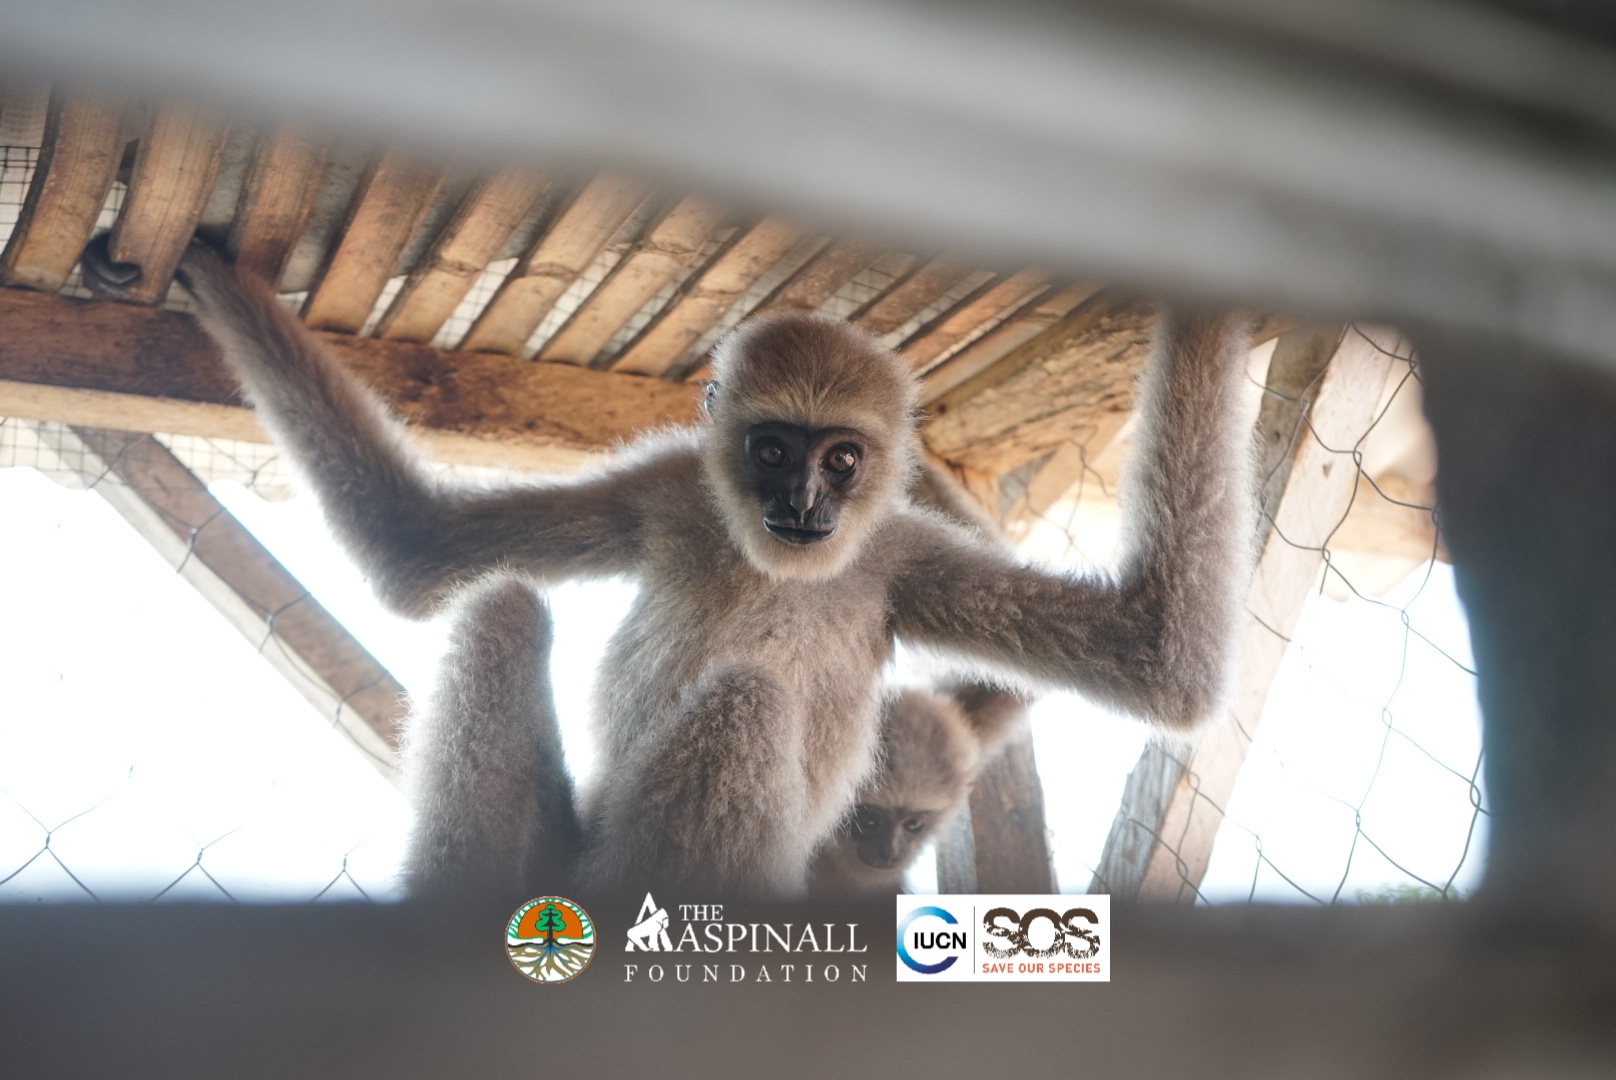 Two rescued gibbons arrive at JPRC 22nd June 2021